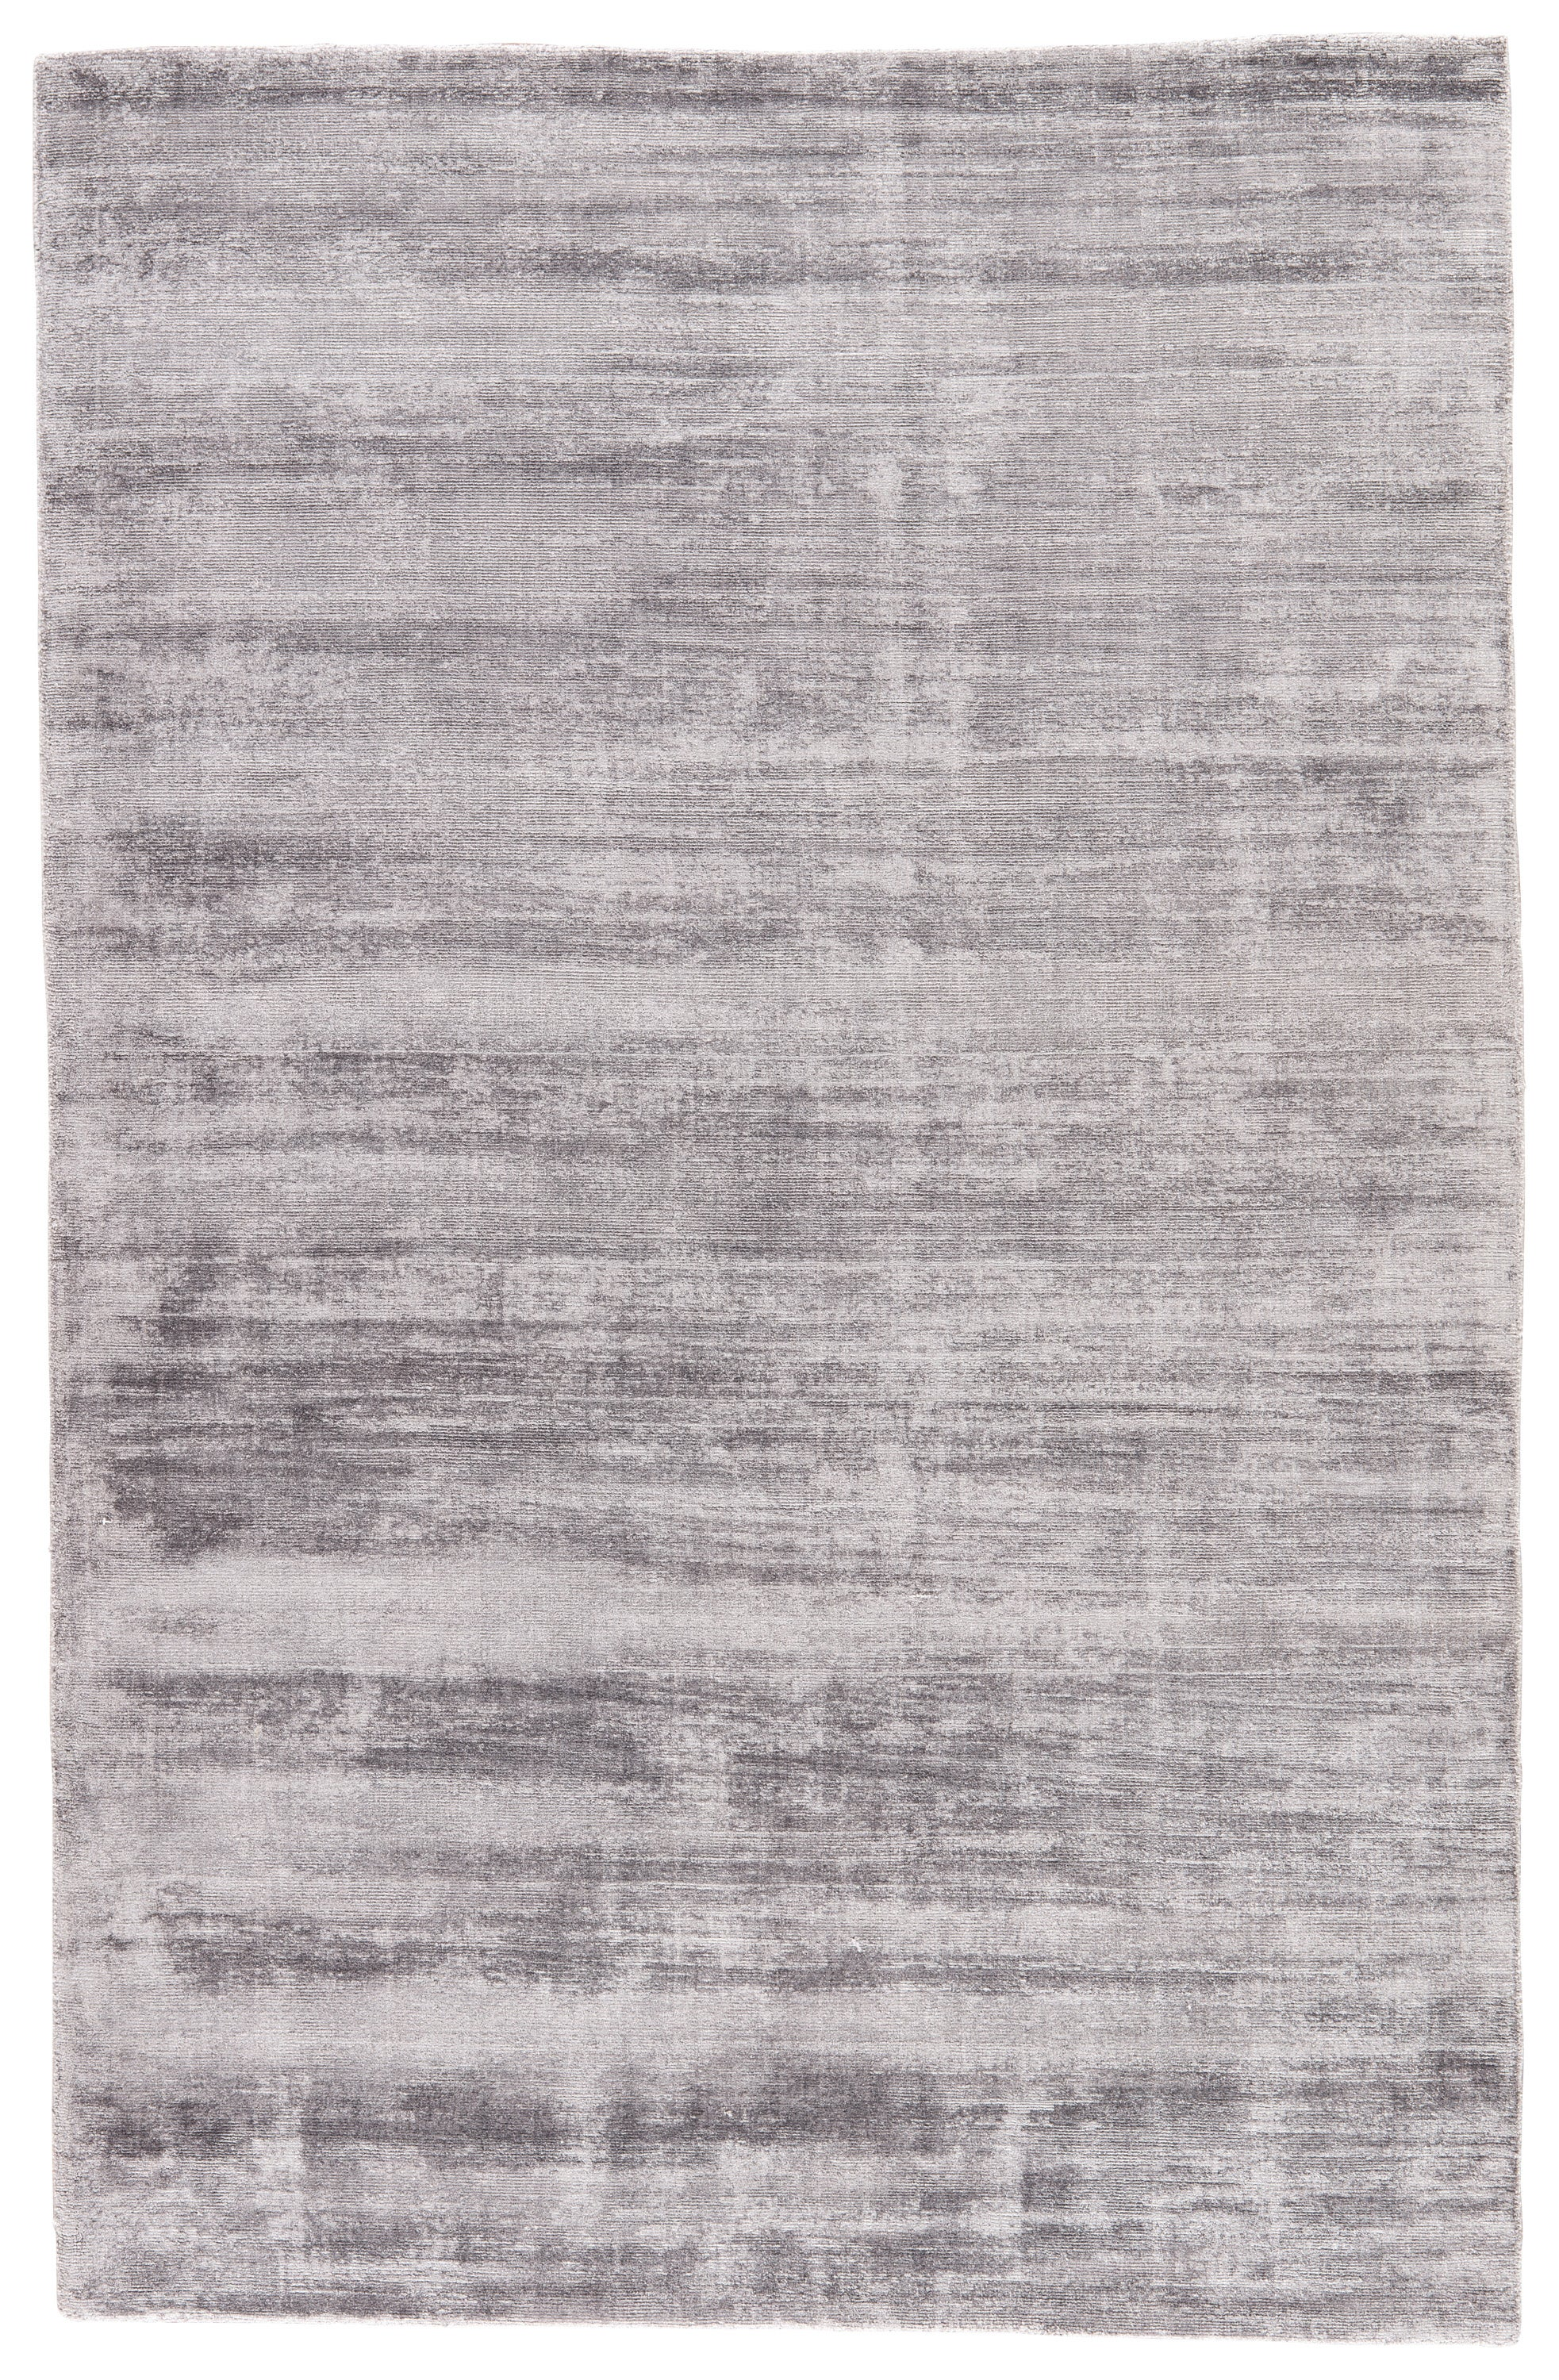 Rectangle Gray Solid Hand Loomed Synthetics Contemporary recommended for Bedroom, Bathroom, Kids, Dining Room, Office, Hallway, Living Room